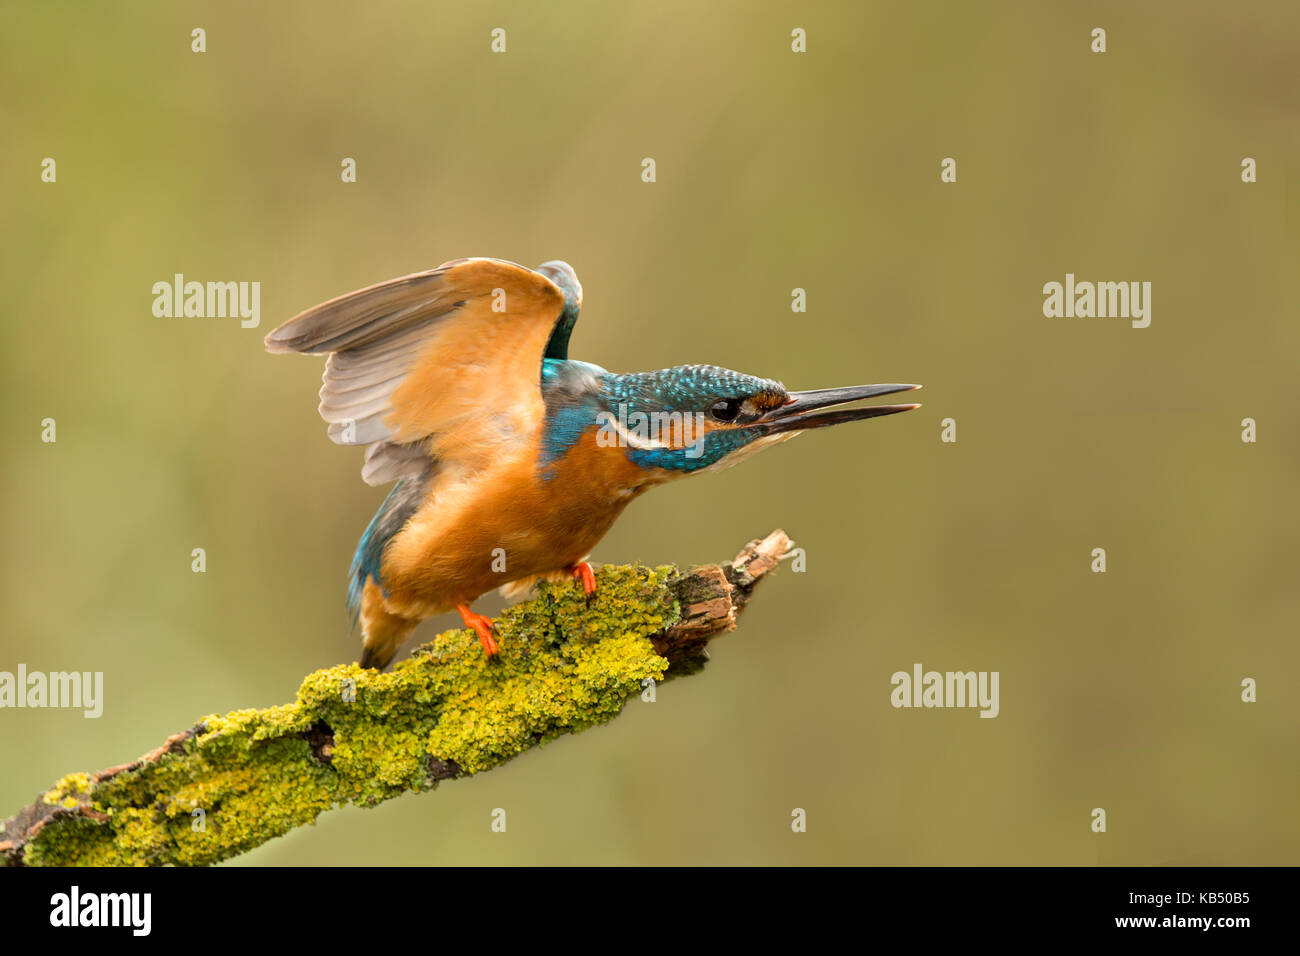 Adult Kingfisher (Alcedo atthis) displaying aggressive dominance behaviour to maintain territory whilst perched - Stock Image